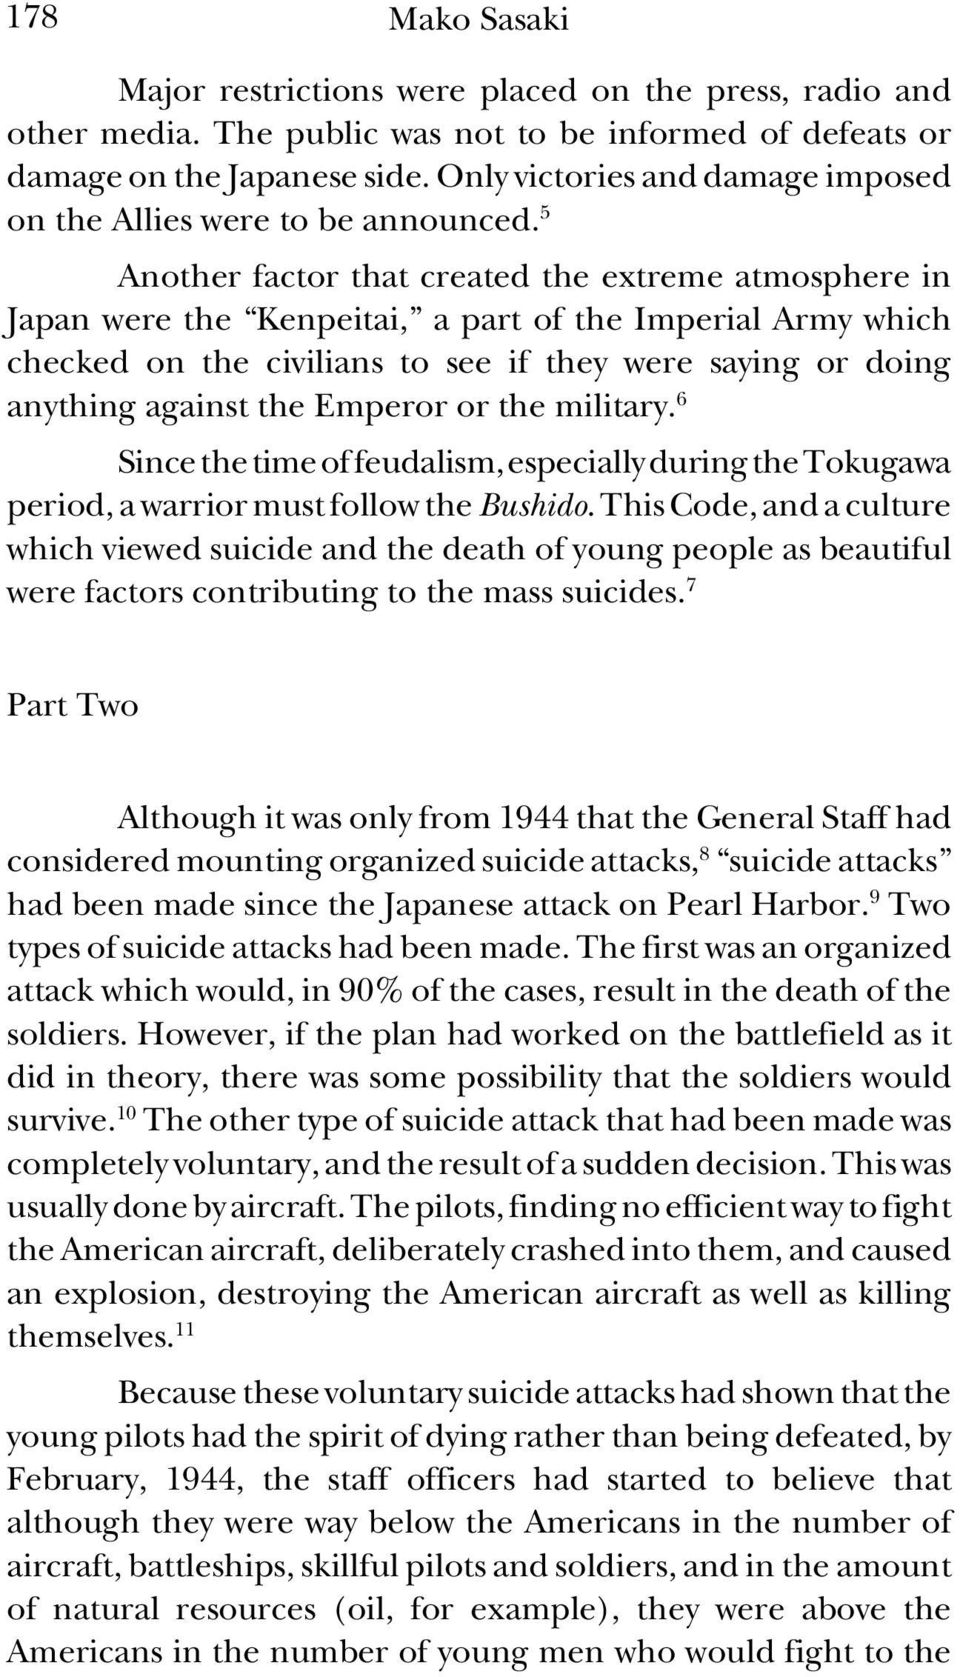 5 Another factor that created the extreme atmosphere in Japan were the Kenpeitai, a part of the Imperial Army which checked on the civilians to see if they were saying or doing anything against the